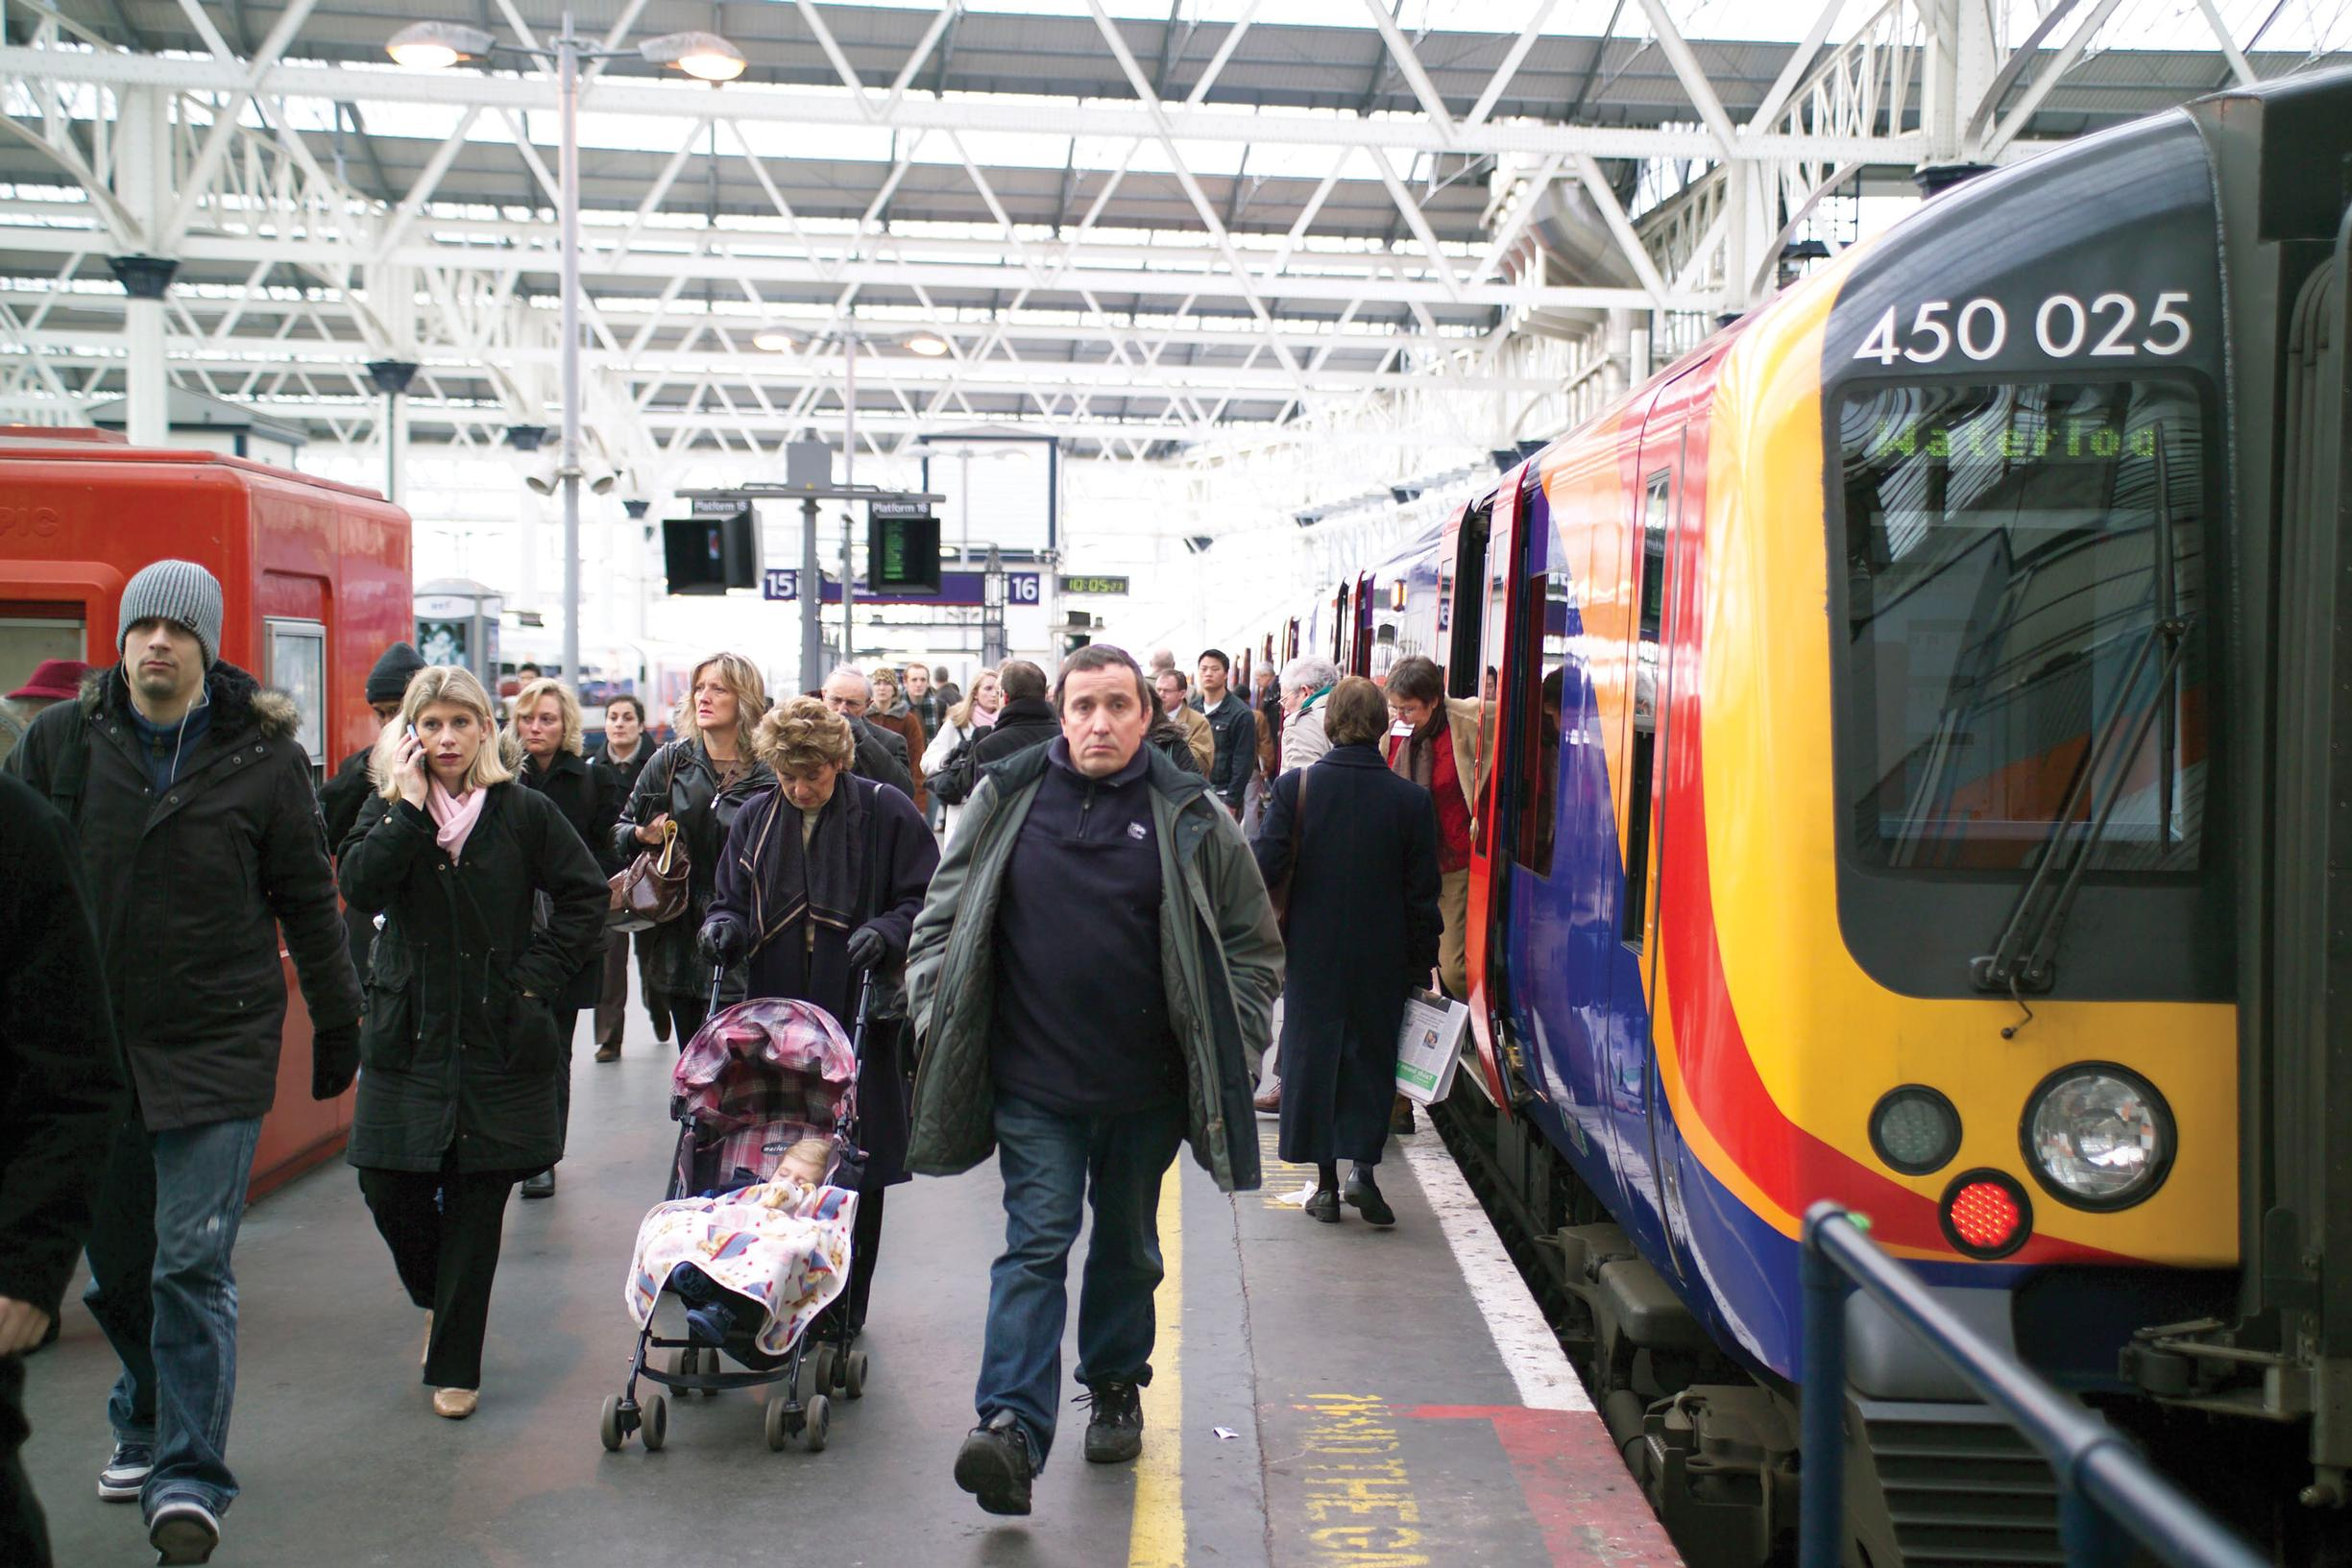 More service sector jobs, more jobs in London, and more people living in cities all help explain rail patronage growth